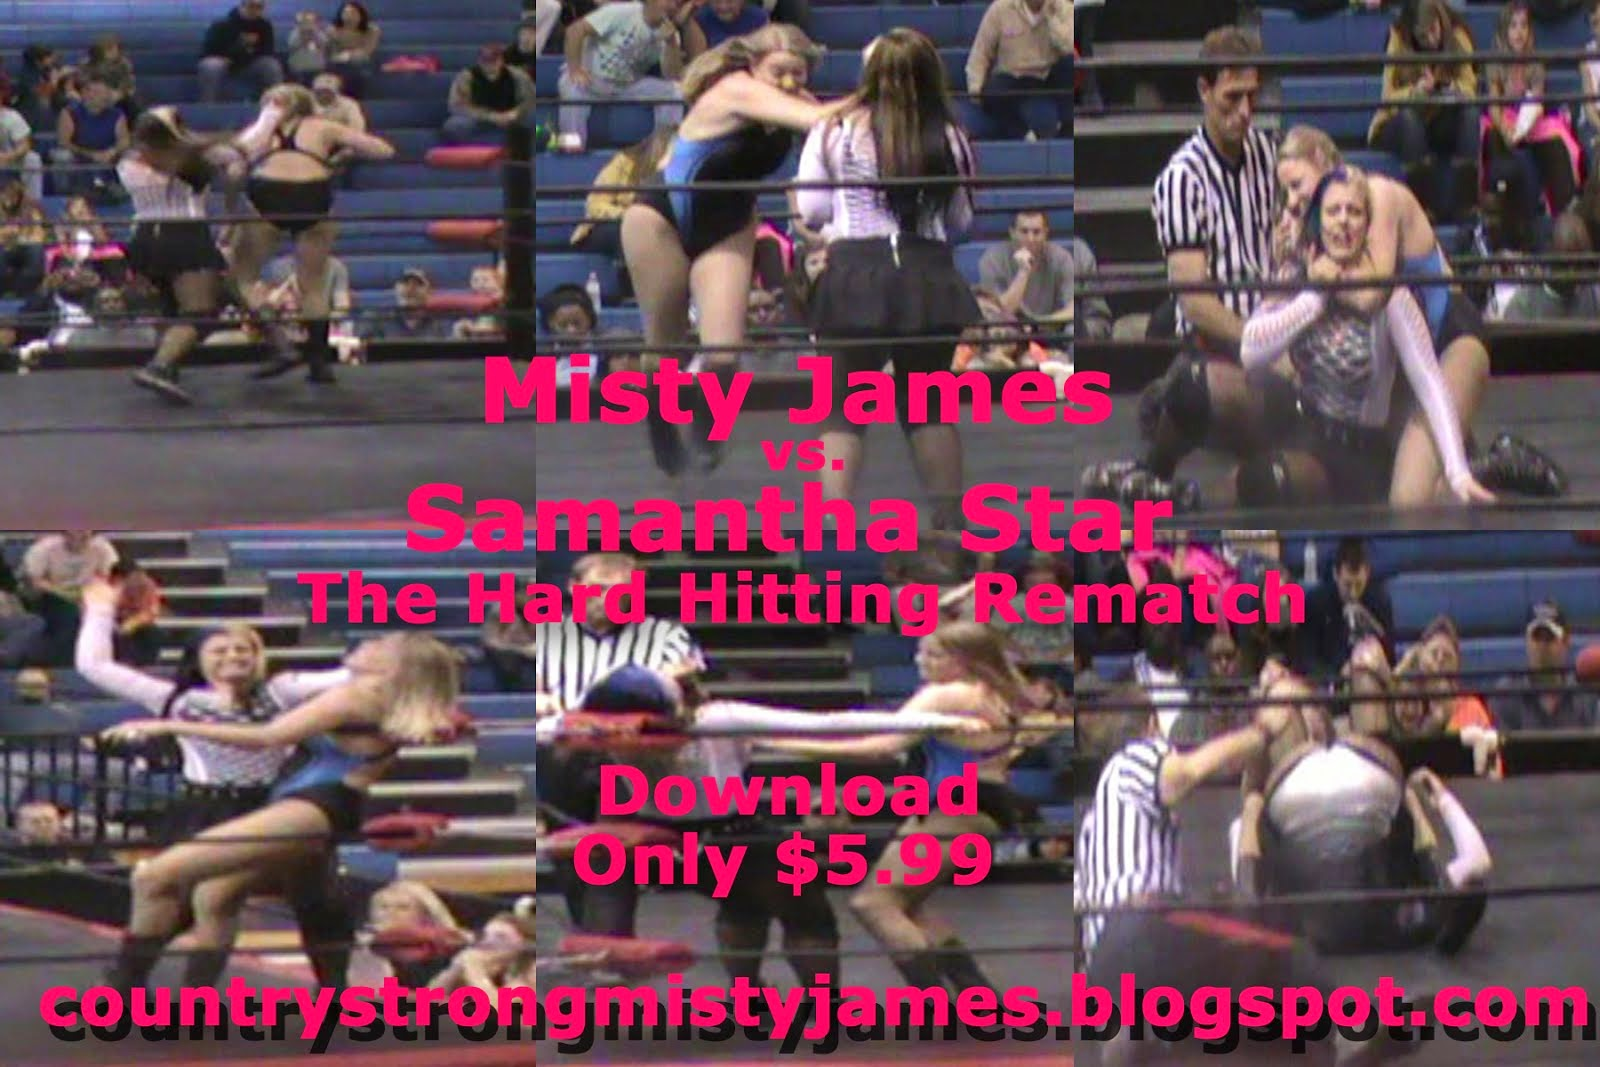 Misty James vs. Samantha Star Rematch